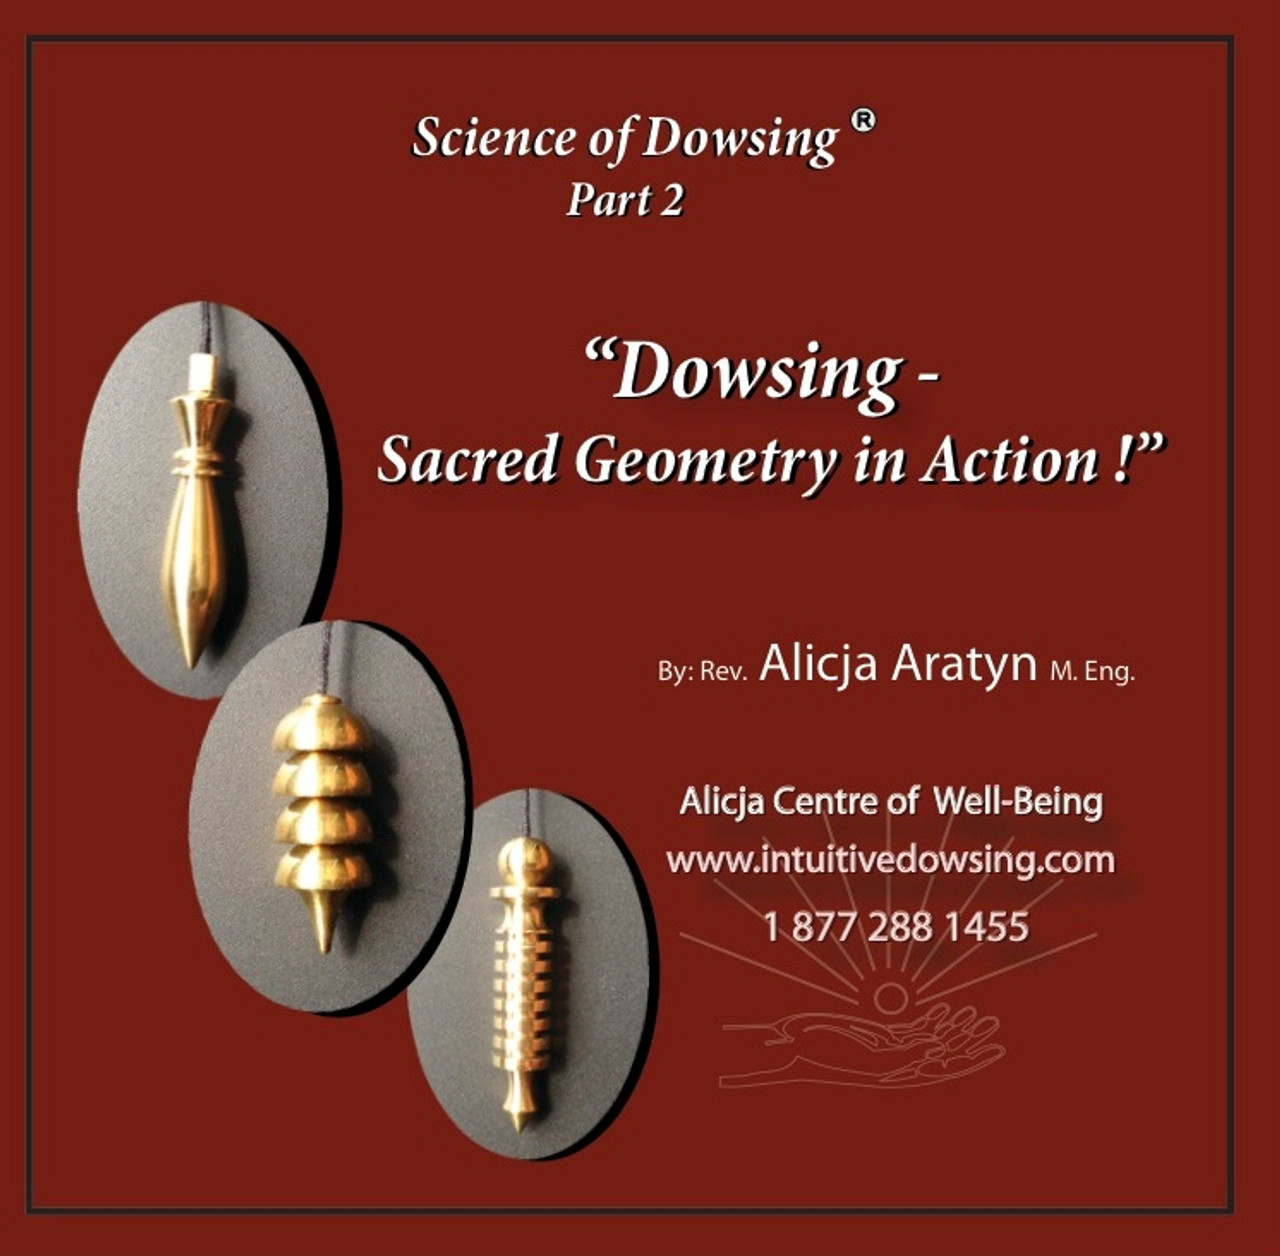 Dowsing - Sacred Geometry in Action